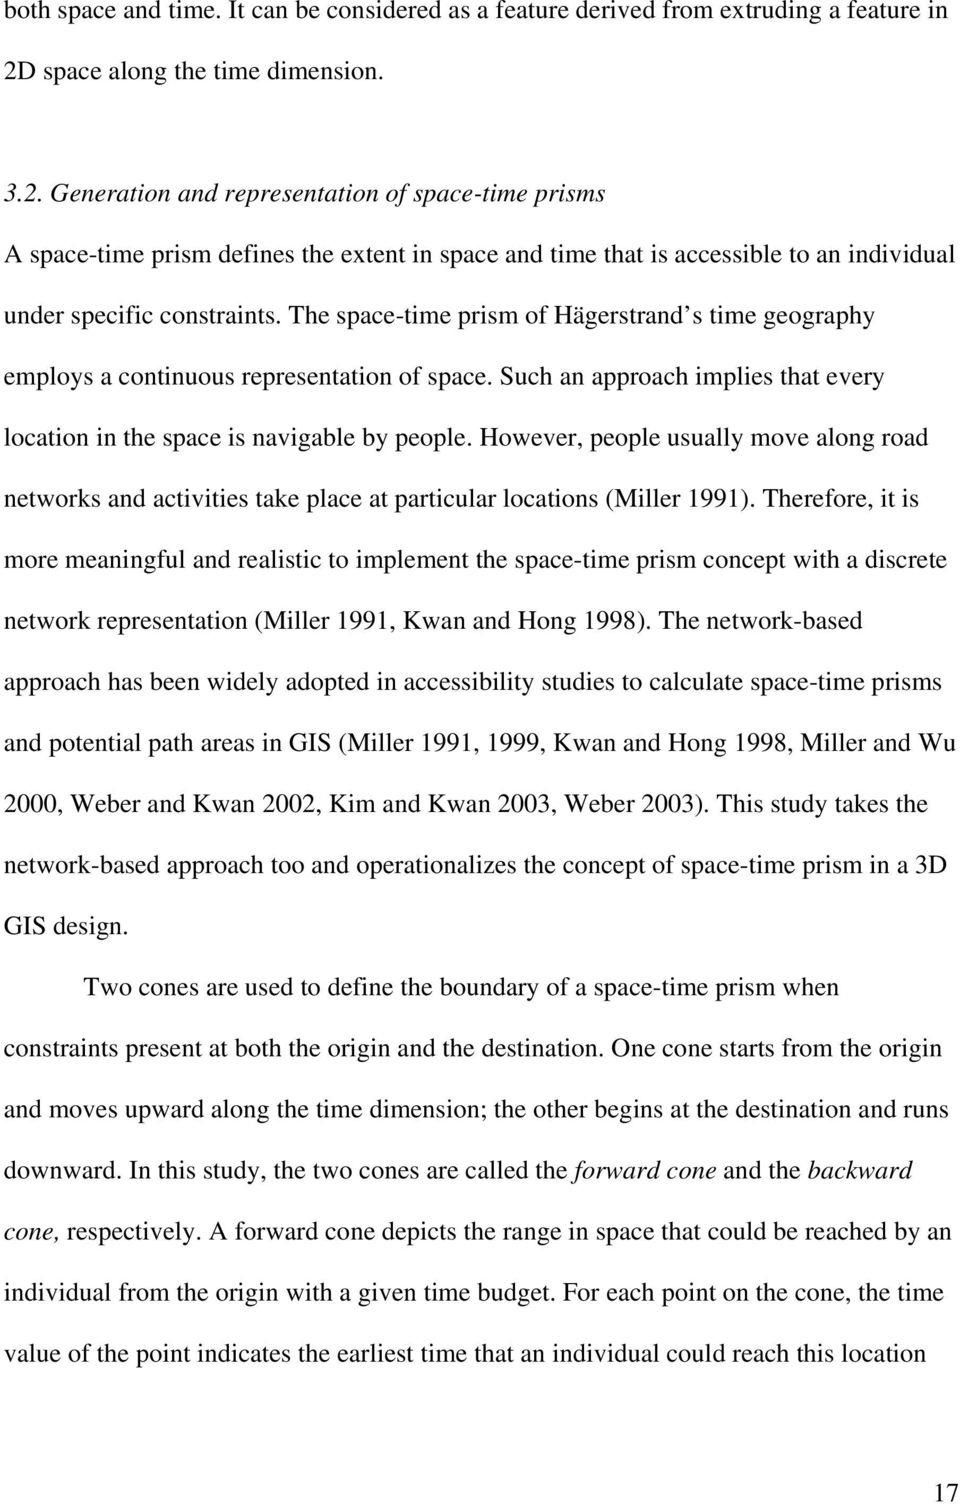 Generation and representation of space-time prisms A space-time prism defines the extent in space and time that is accessible to an individual under specific constraints.